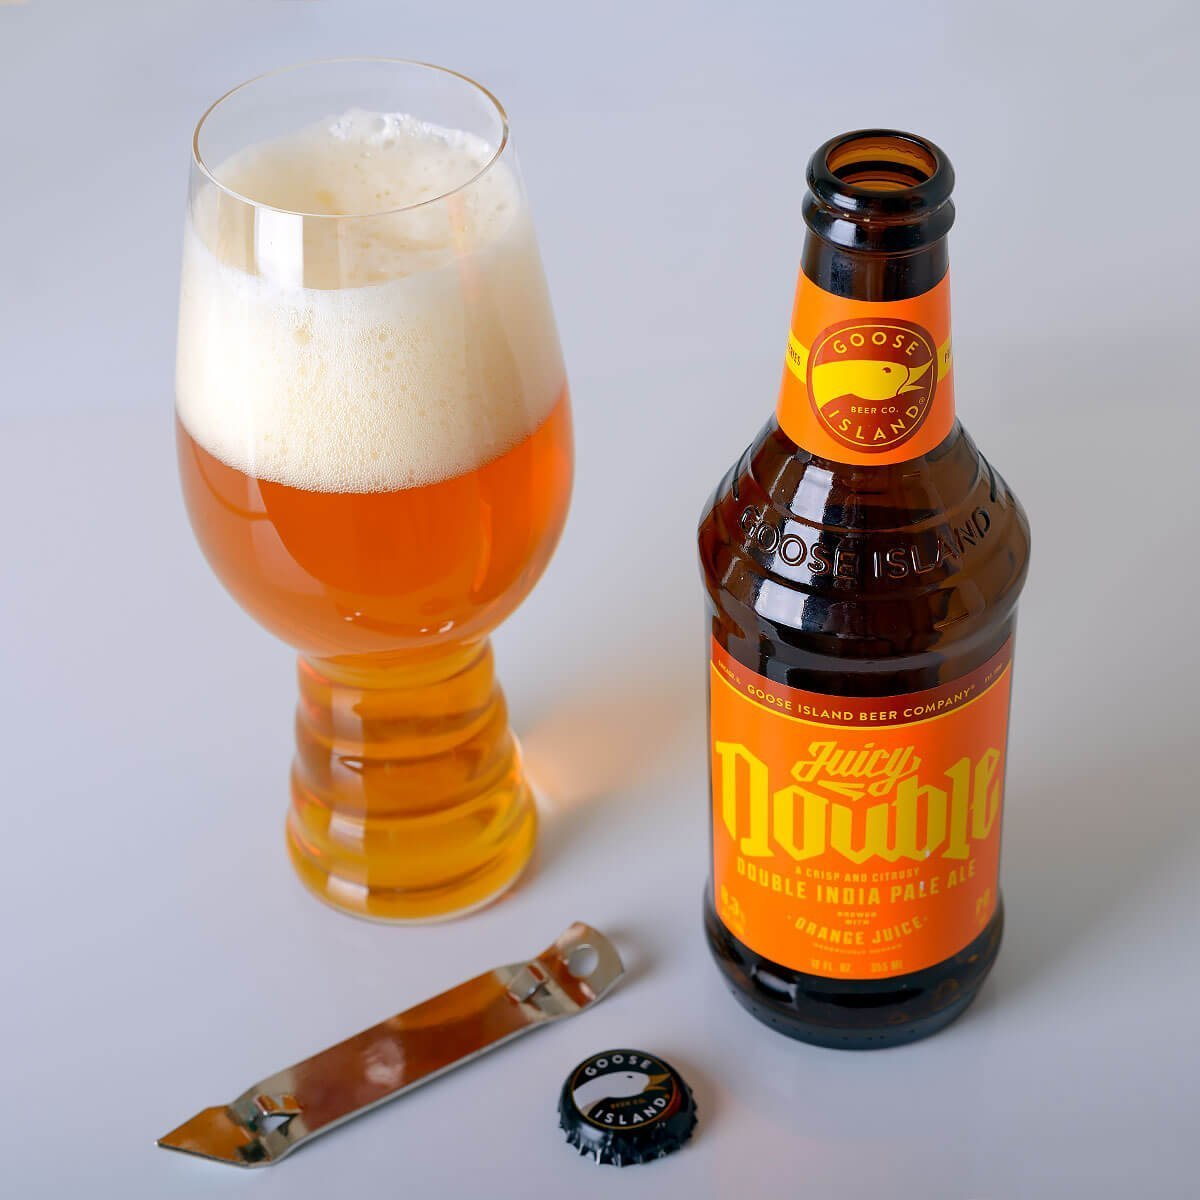 Juicy Double is an American Double IPA by Goose Island Beer Co. that blends sweet orange juice with citrus, piney hops, and booze.